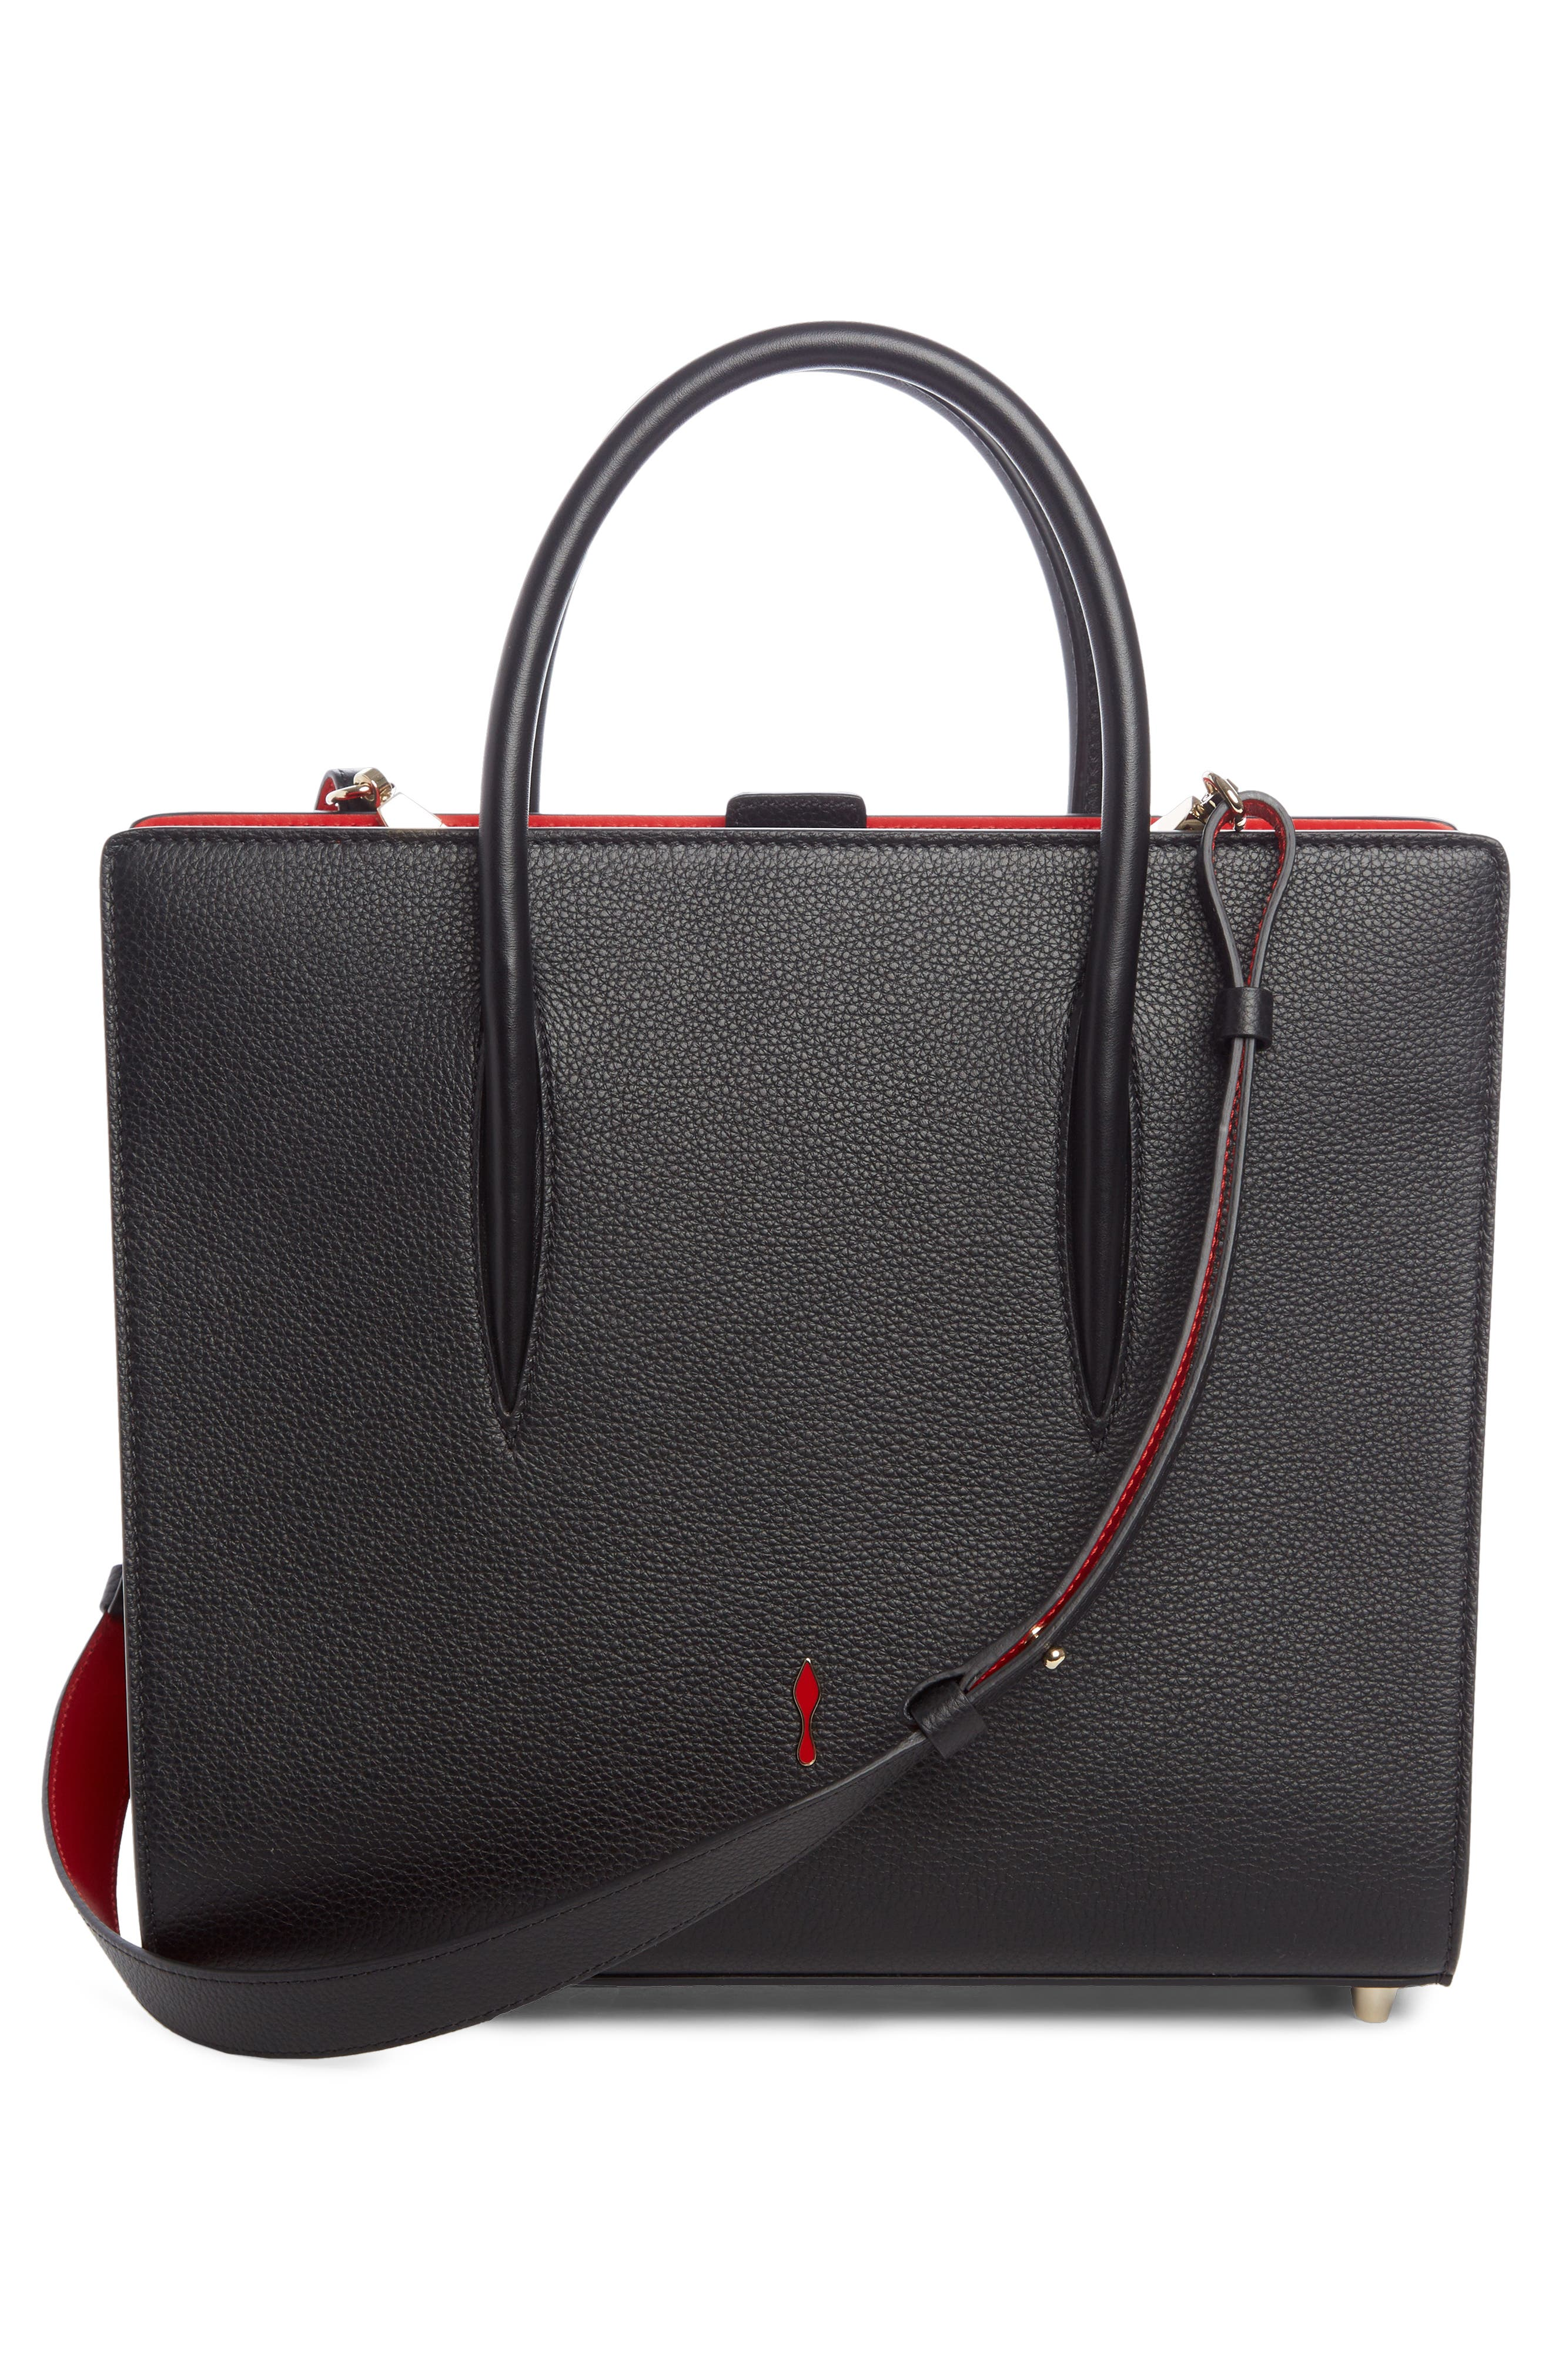 Medium Paloma Leather Tote,                             Alternate thumbnail 3, color,                             BLACK/ RED-GOLD